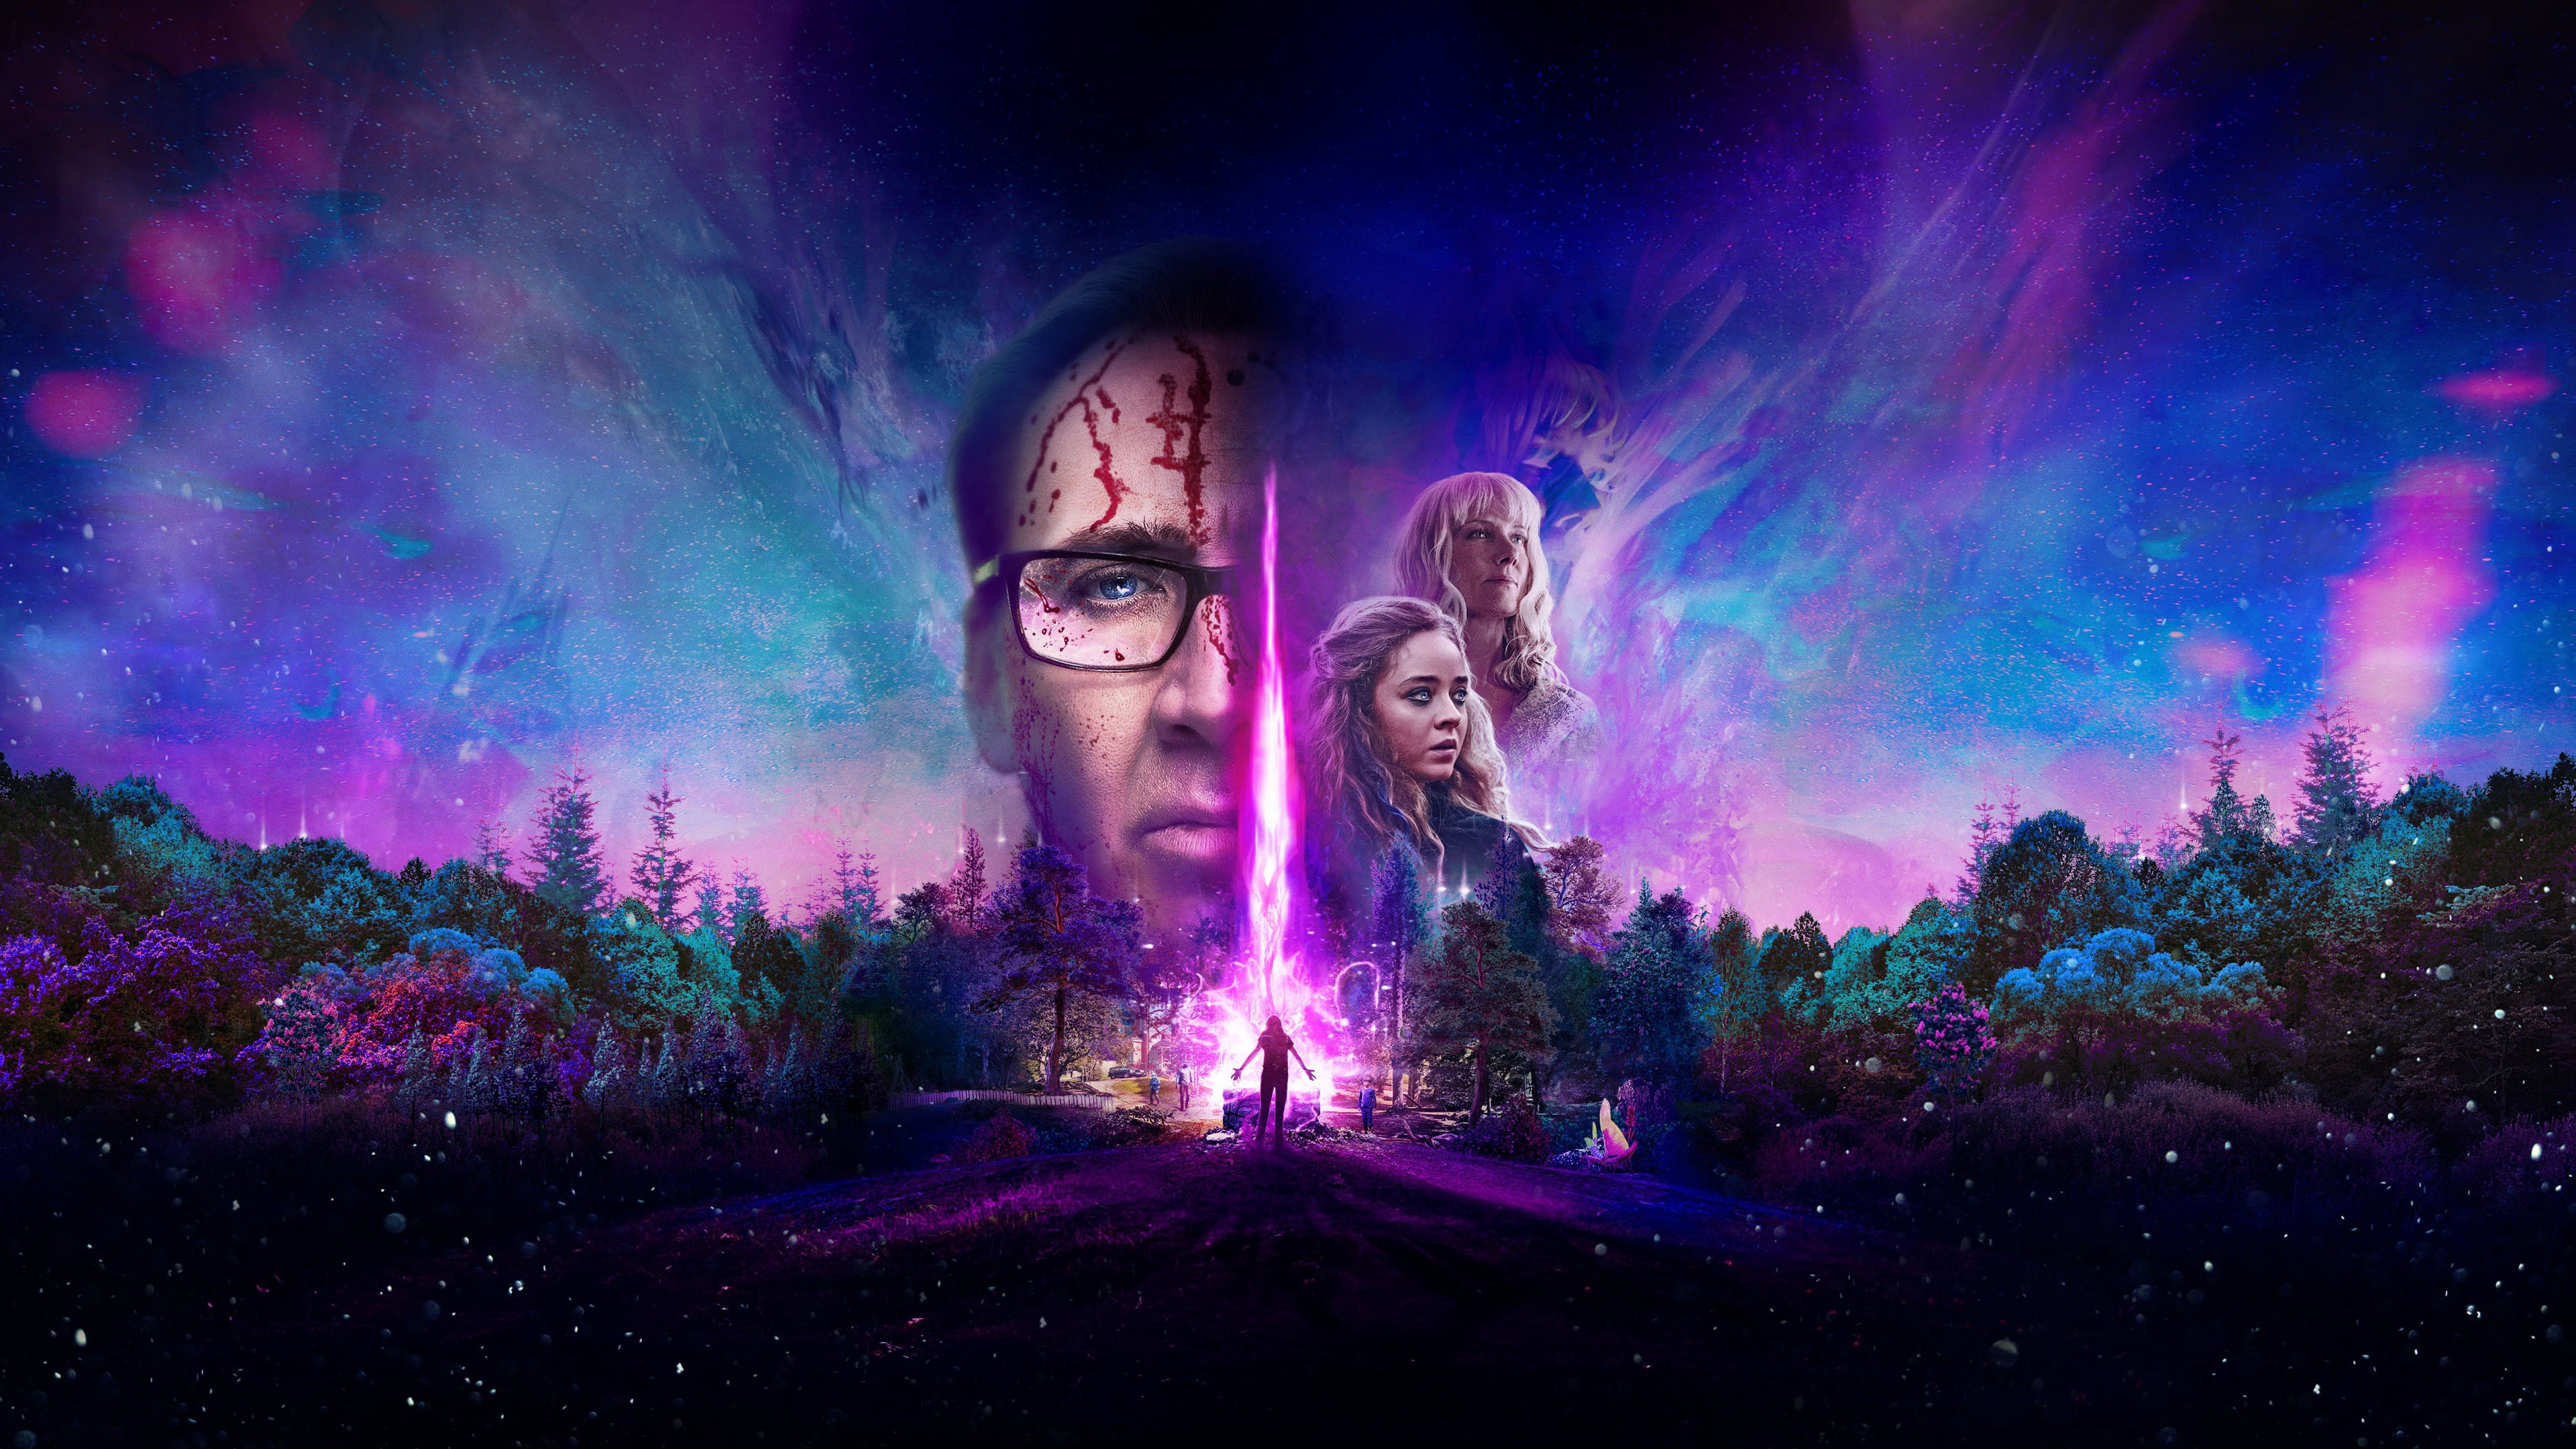 123movies Watch Color Out Of Space 2020 Hd Full Movie By Color Out Of Space 2020 Aug 2020 Medium